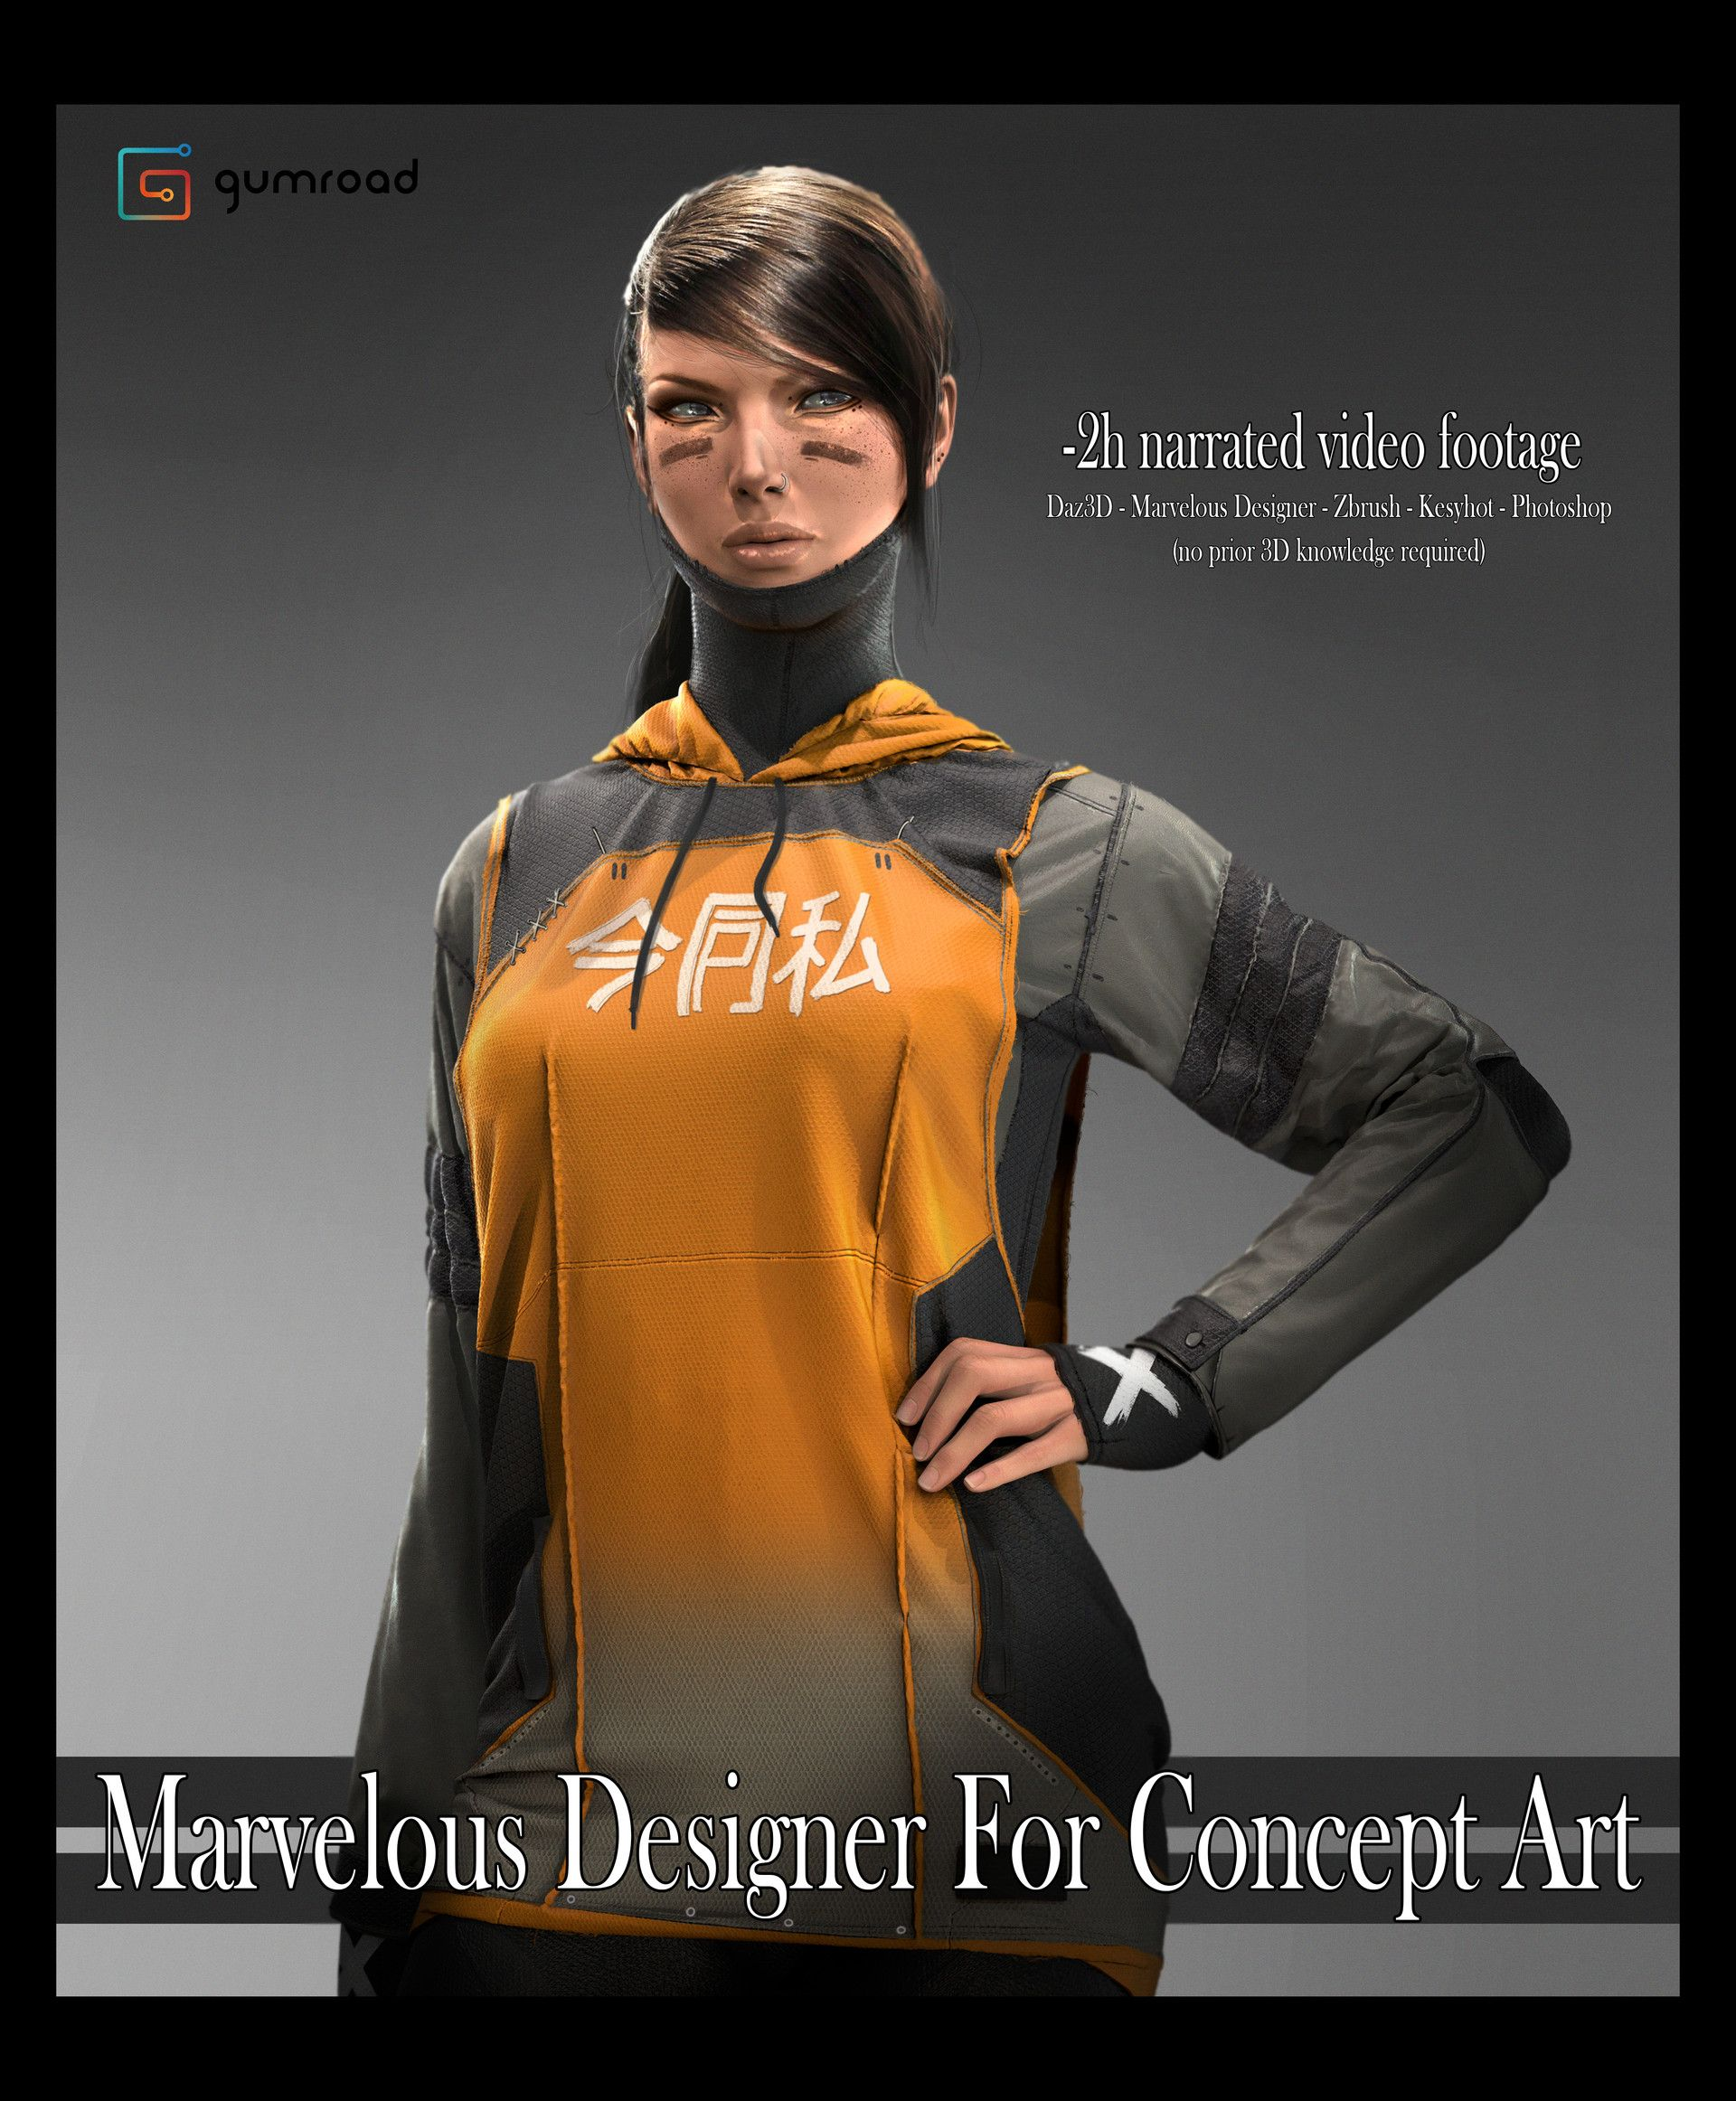 ArtStation - Gumroad - Marvelous Designer For Concept Art, Matthias De Muylder